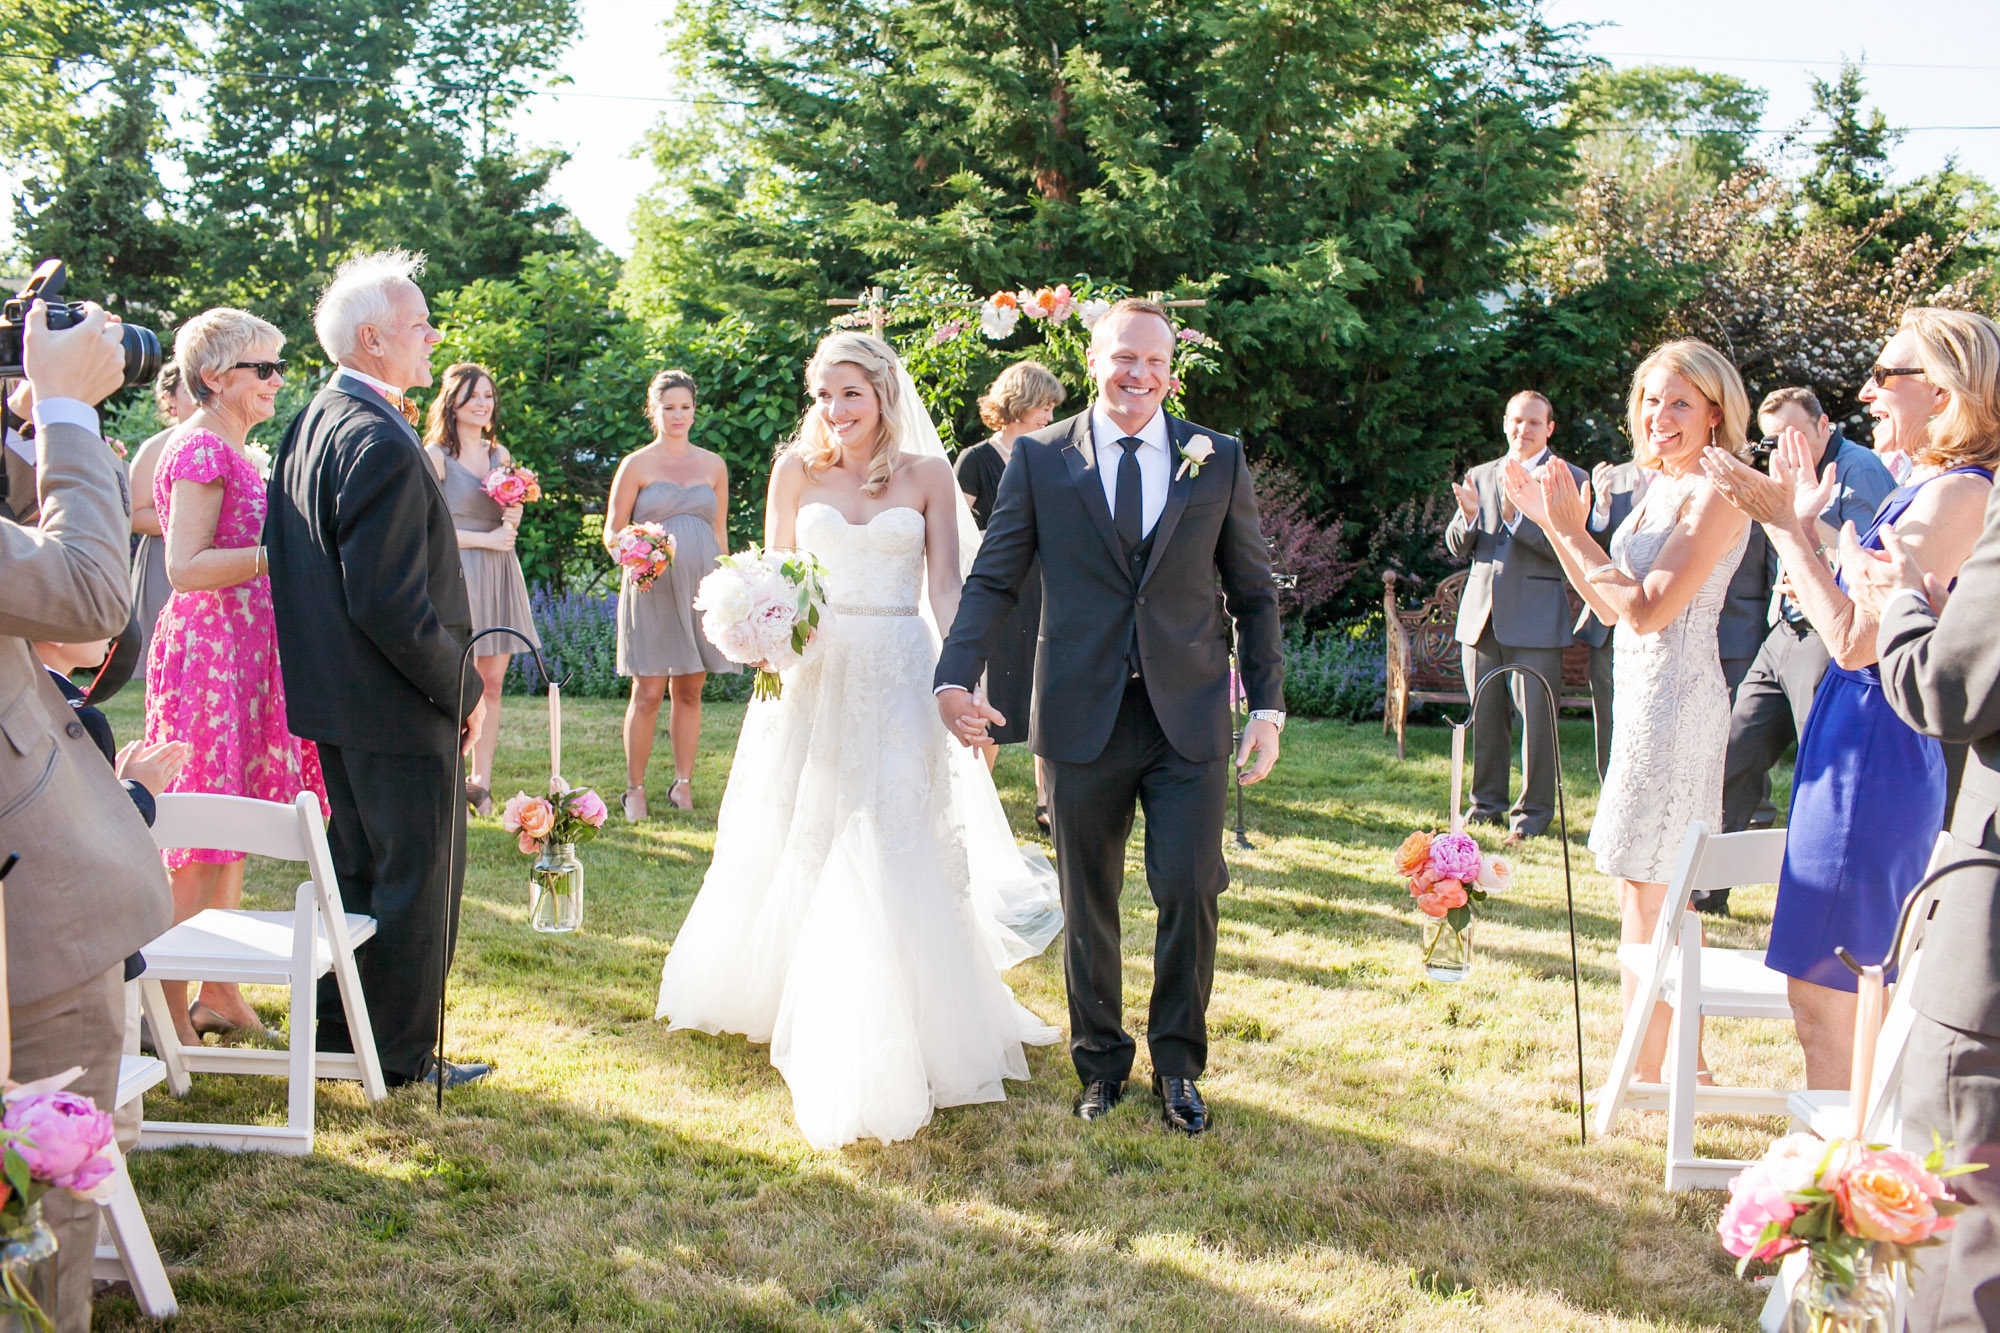 23Katy_Eddie_Talcott_House_Wedding_Westbrook_CT_Tanya_Salazar_Photography.jpg